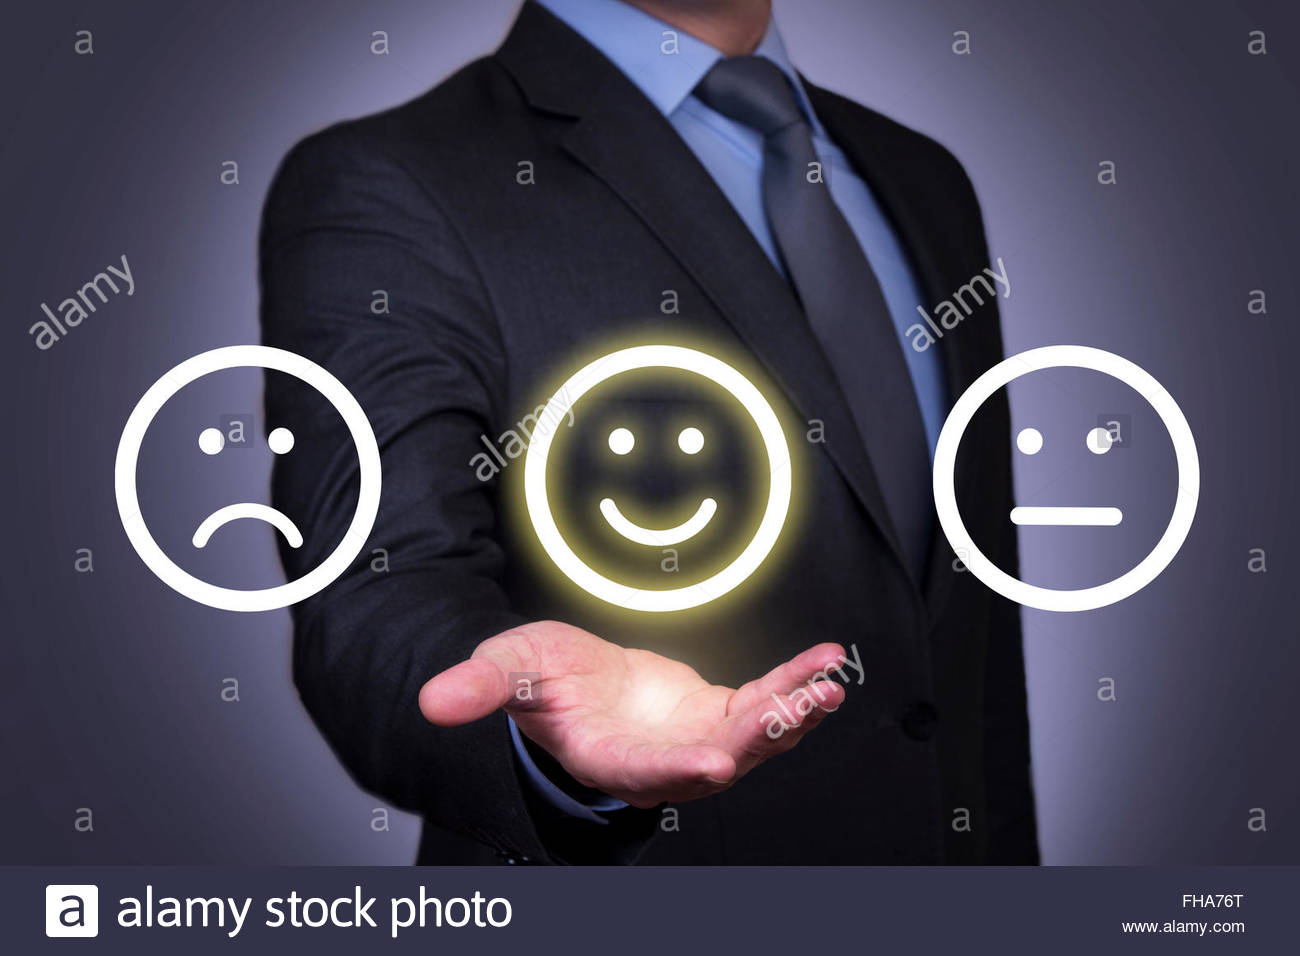 Happy Face on Human Hand - Stock Image